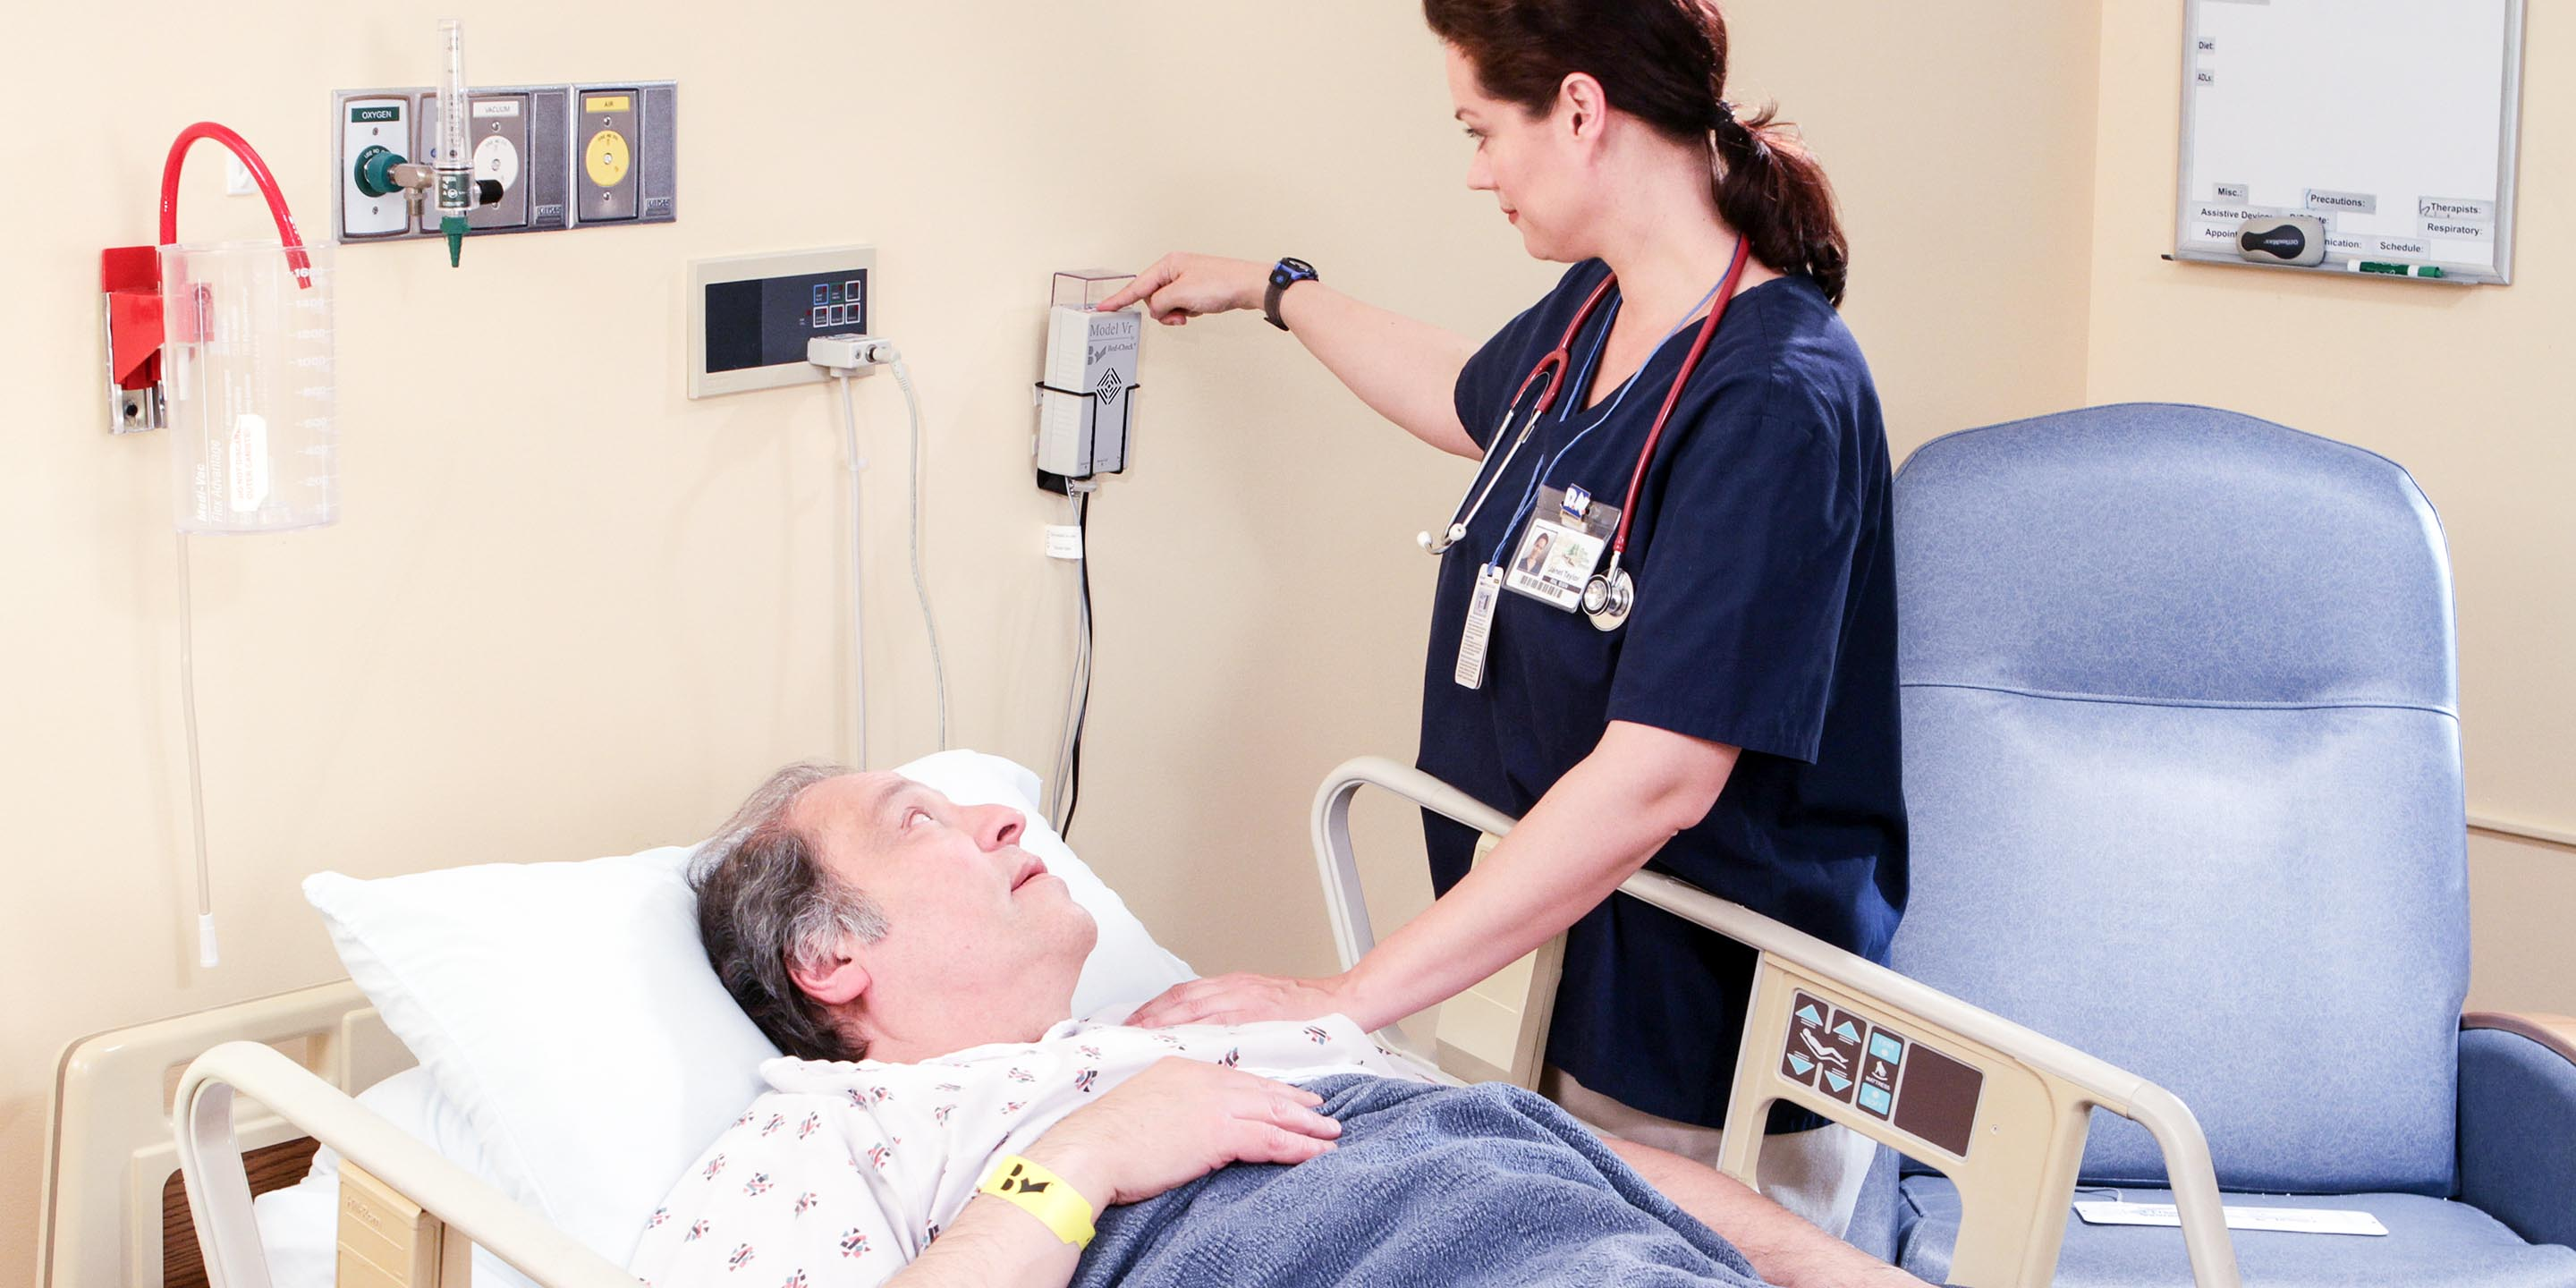 Nurse attends to Bed-Check monitor of patient